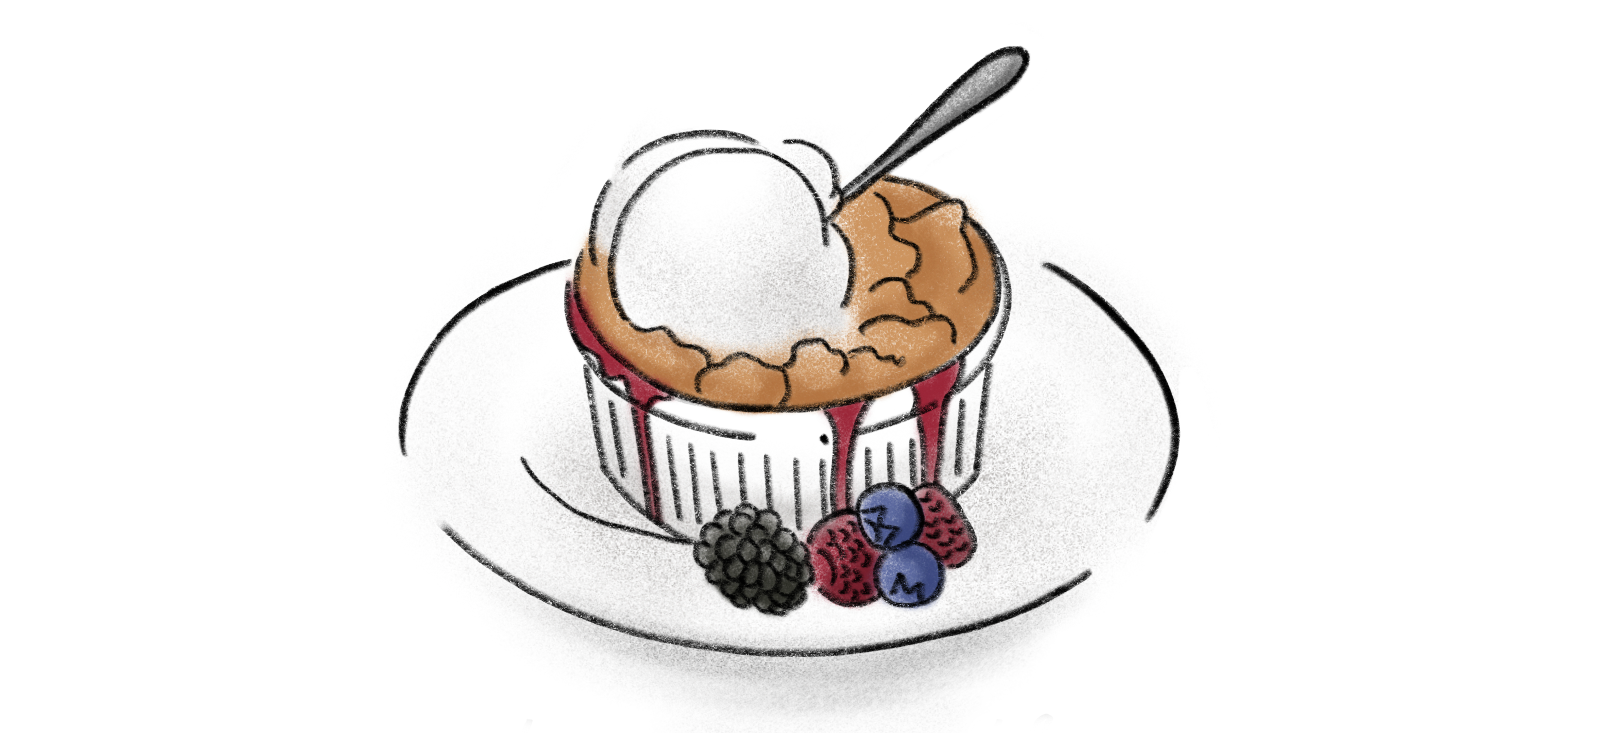 berry-crumble-recipe-illustrated-1.png